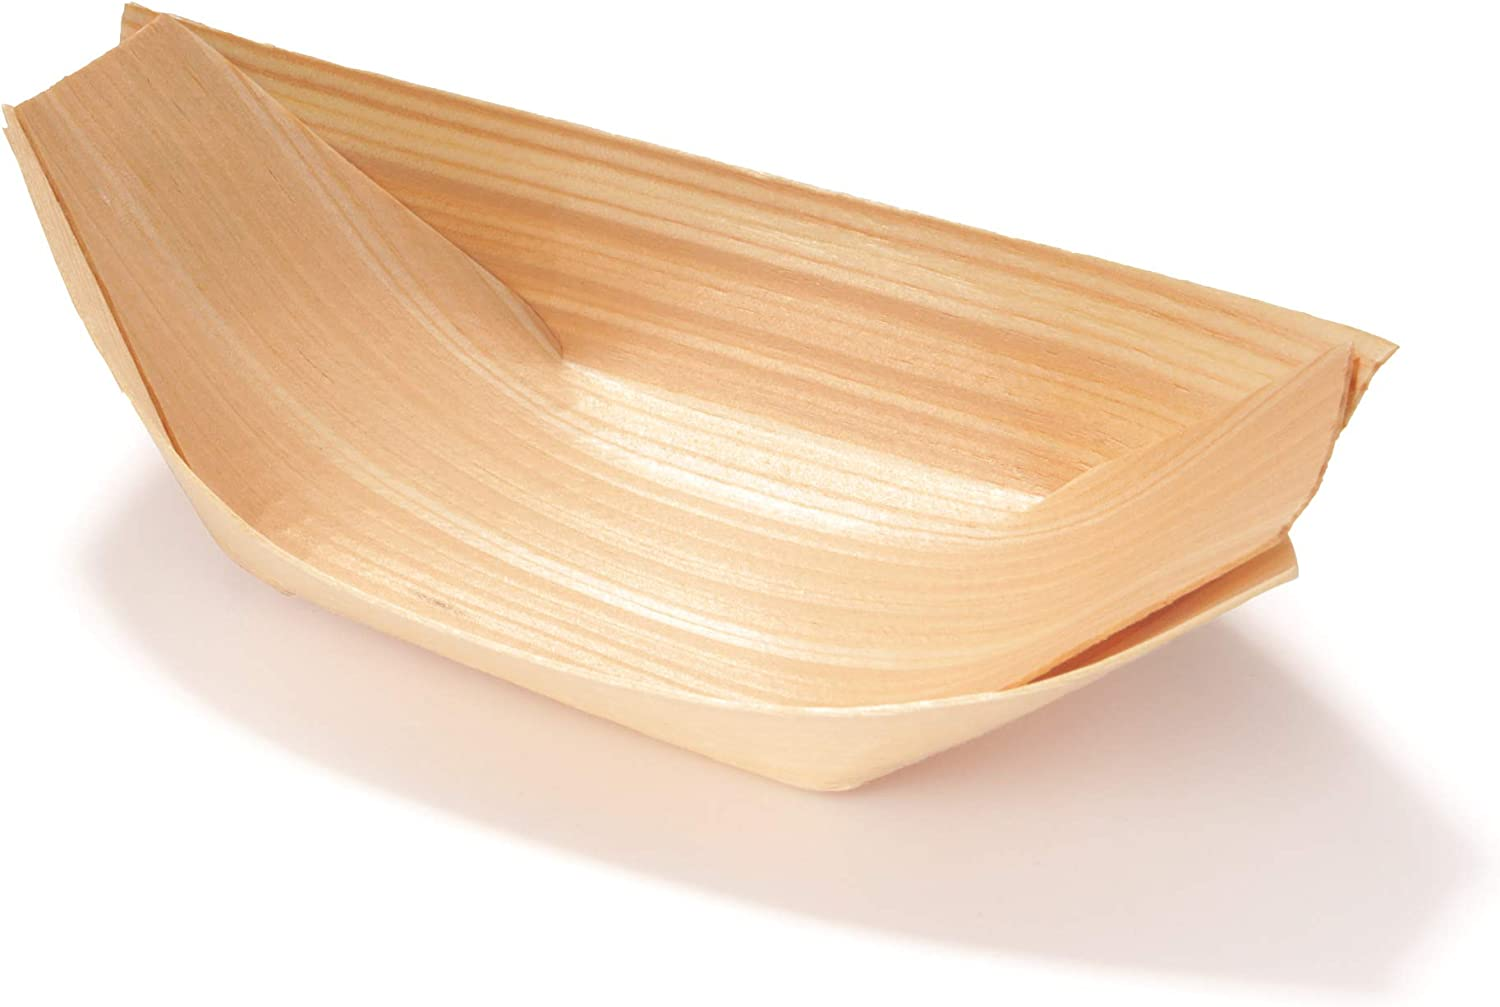 HANDMADE WOVEN BAMBOO BOAT SERVING DISH NATURAL AUTHENTIC GREAT FOR SNACKS